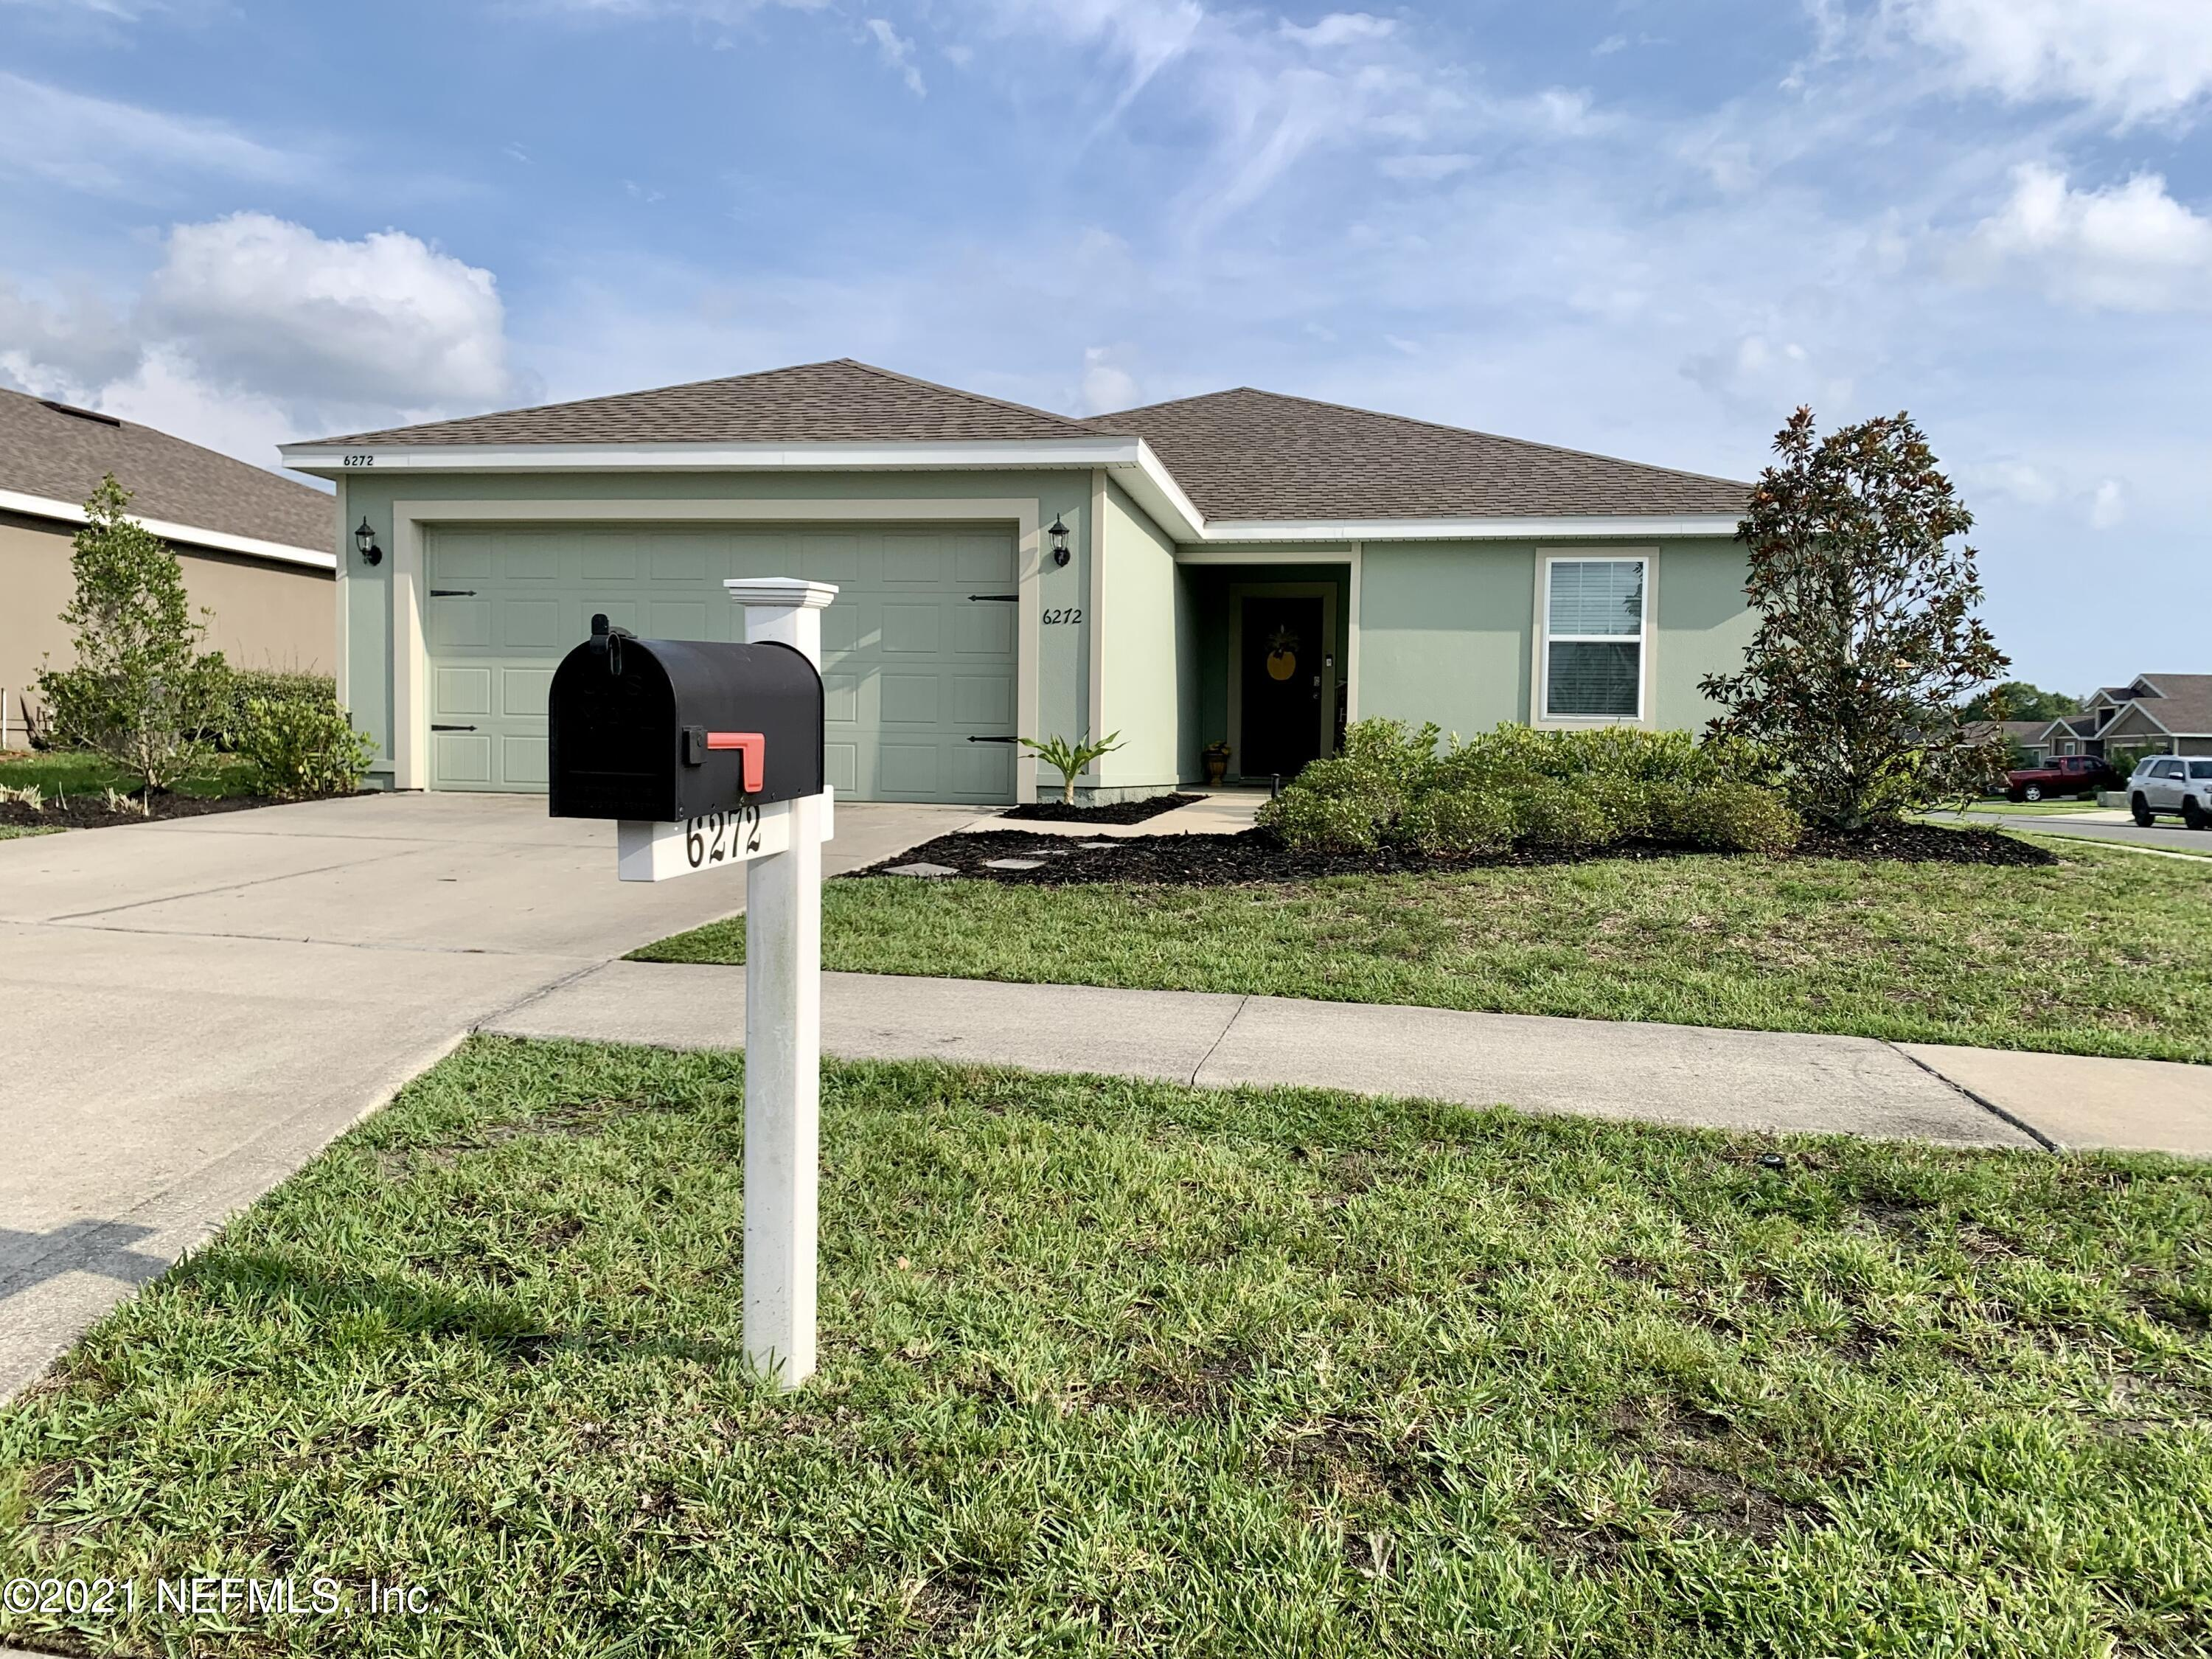 6272 DAYLILLY, MACCLENNY, FLORIDA 32063, 3 Bedrooms Bedrooms, ,2 BathroomsBathrooms,Residential,For sale,DAYLILLY,1115833